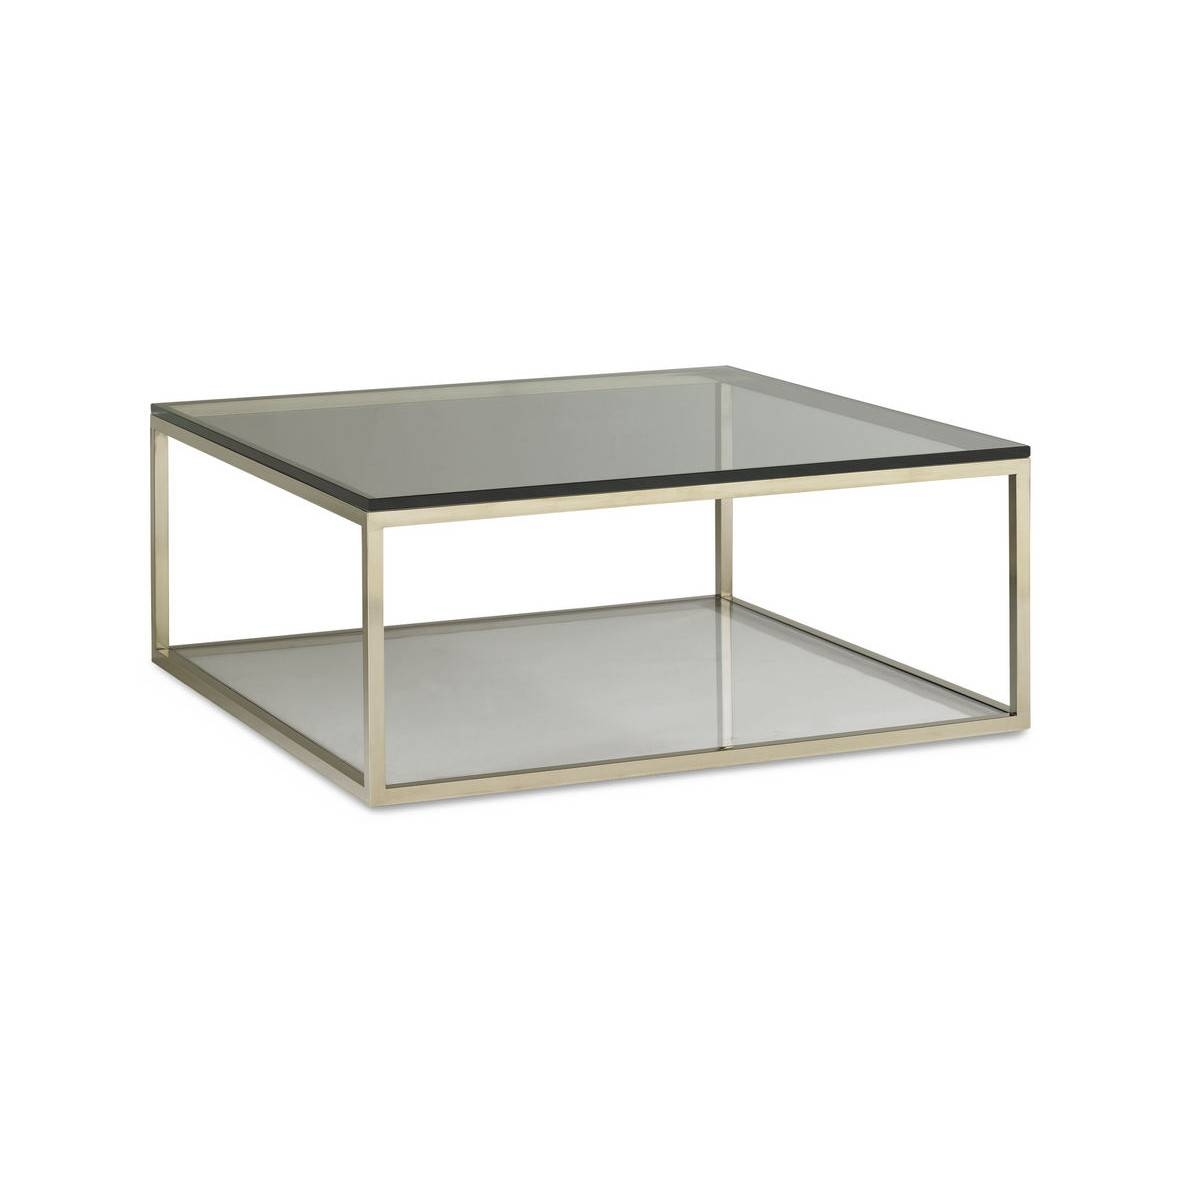 Glass Square Coffee Table - Jericho Mafjar Project inside Glass and Chrome Coffee Tables (Image 15 of 30)